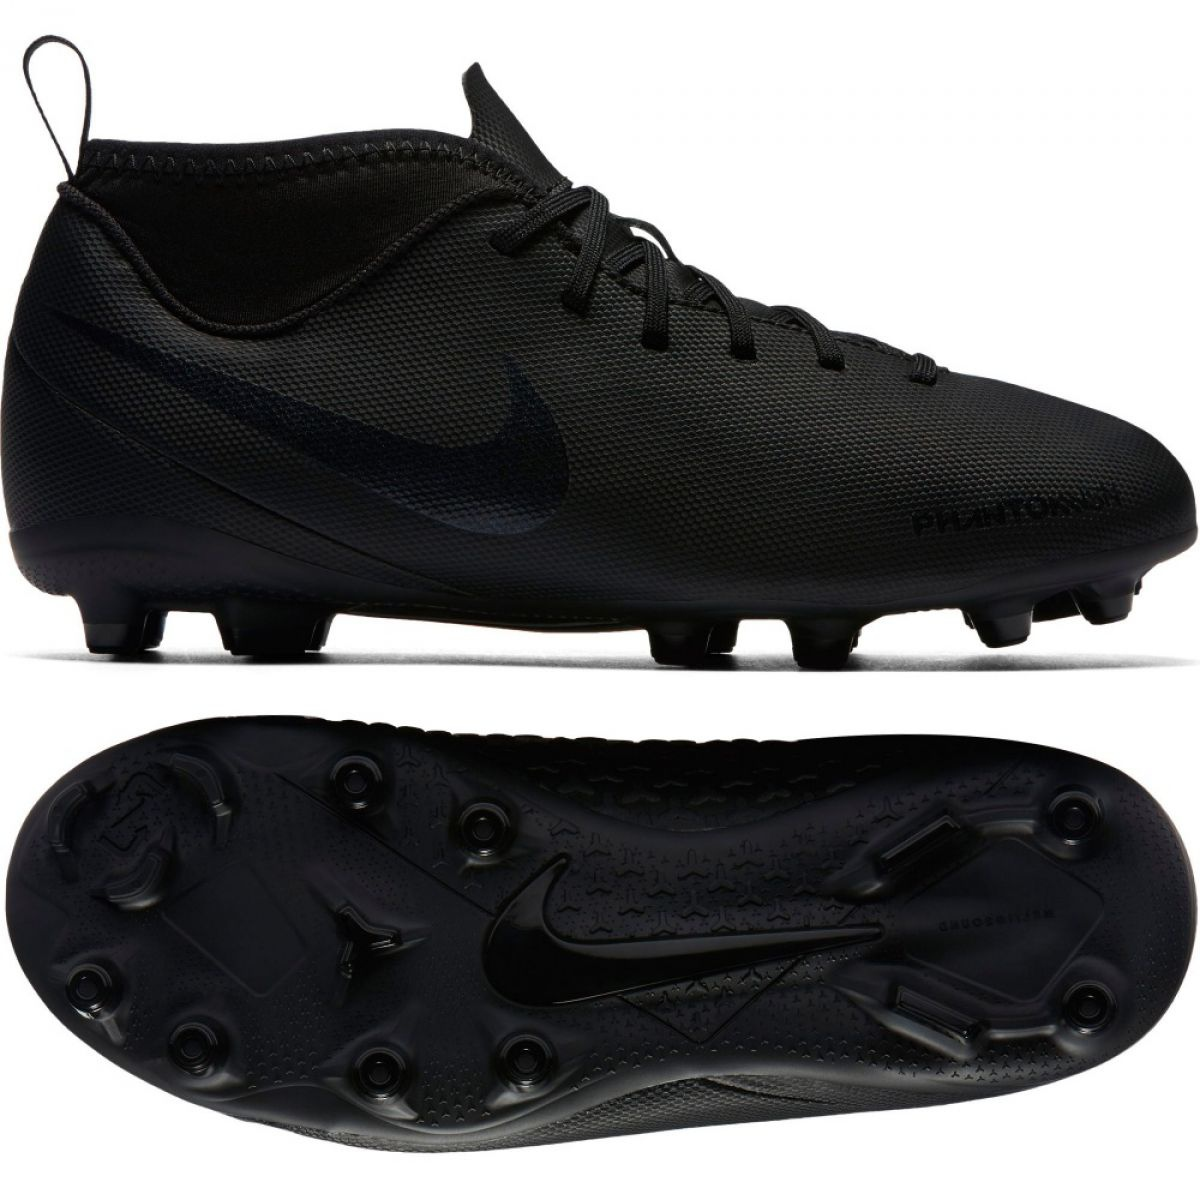 Encantador estrés Despedida  Football shoes Nike Phantom Vsn Club Df Fg Jr AO3288-001 black multicolored  - ButyModne.pl